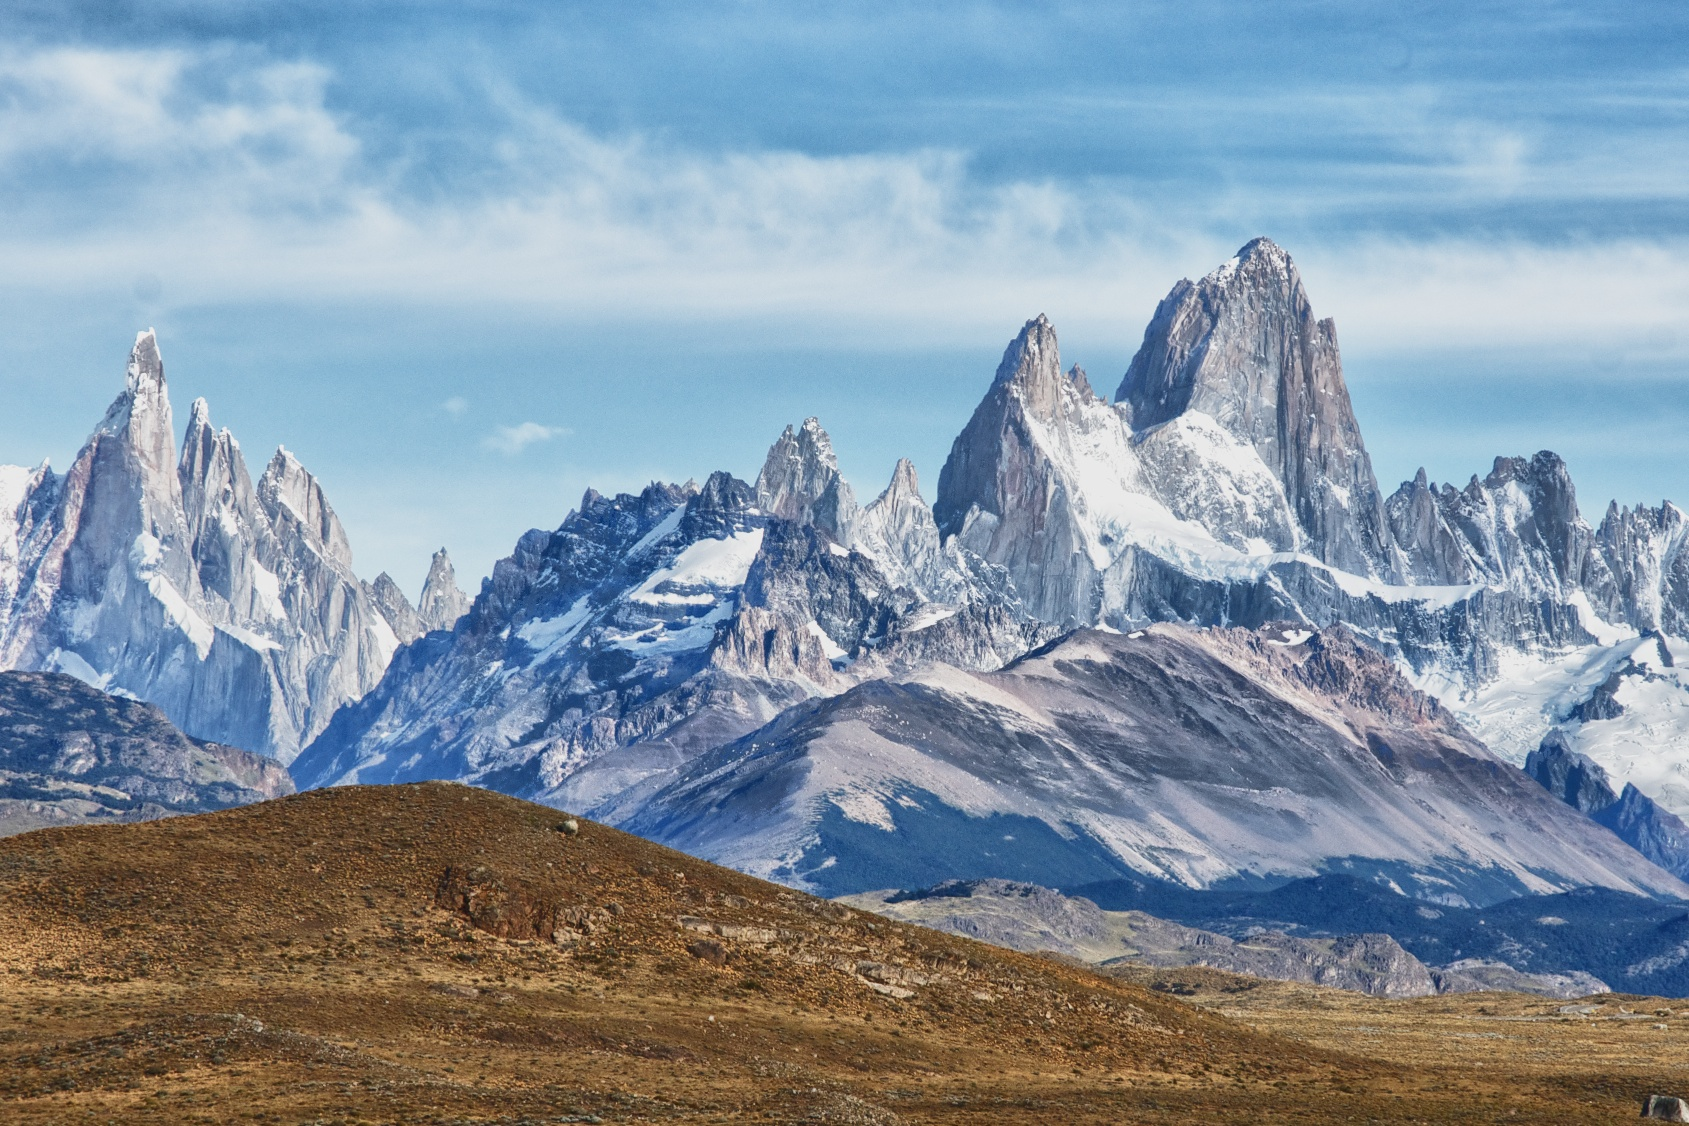 patagonia travel argentina lonely planet - HD1689×1126